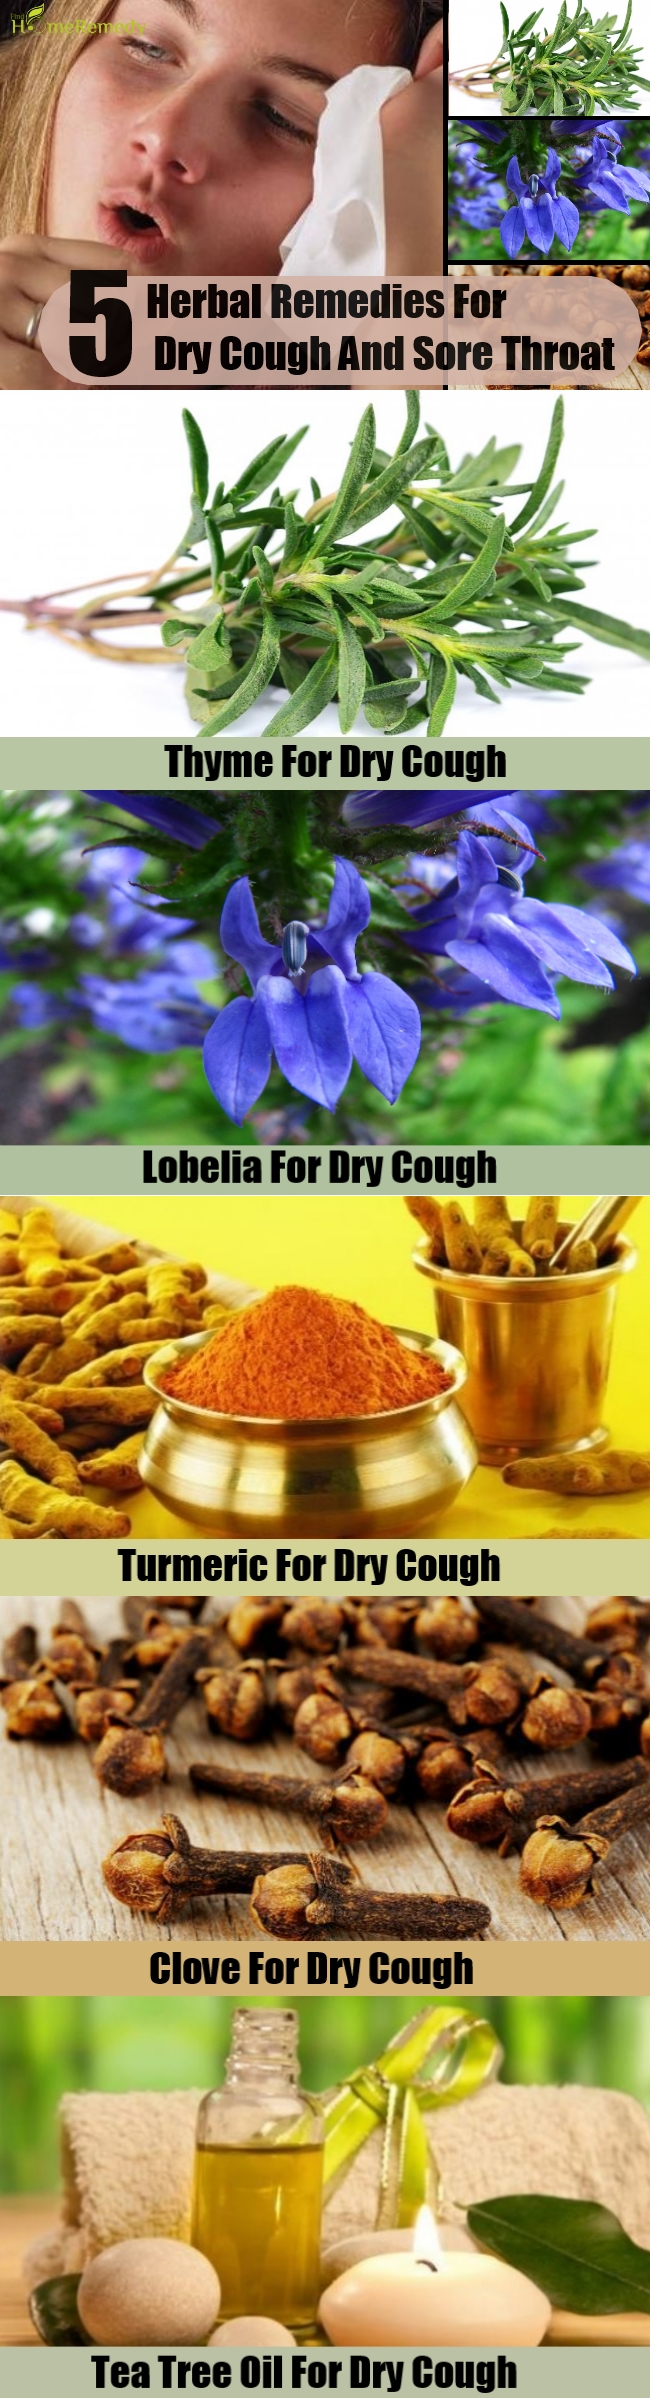 5 Herbal Remedies For Dry Cough And Sore Throat